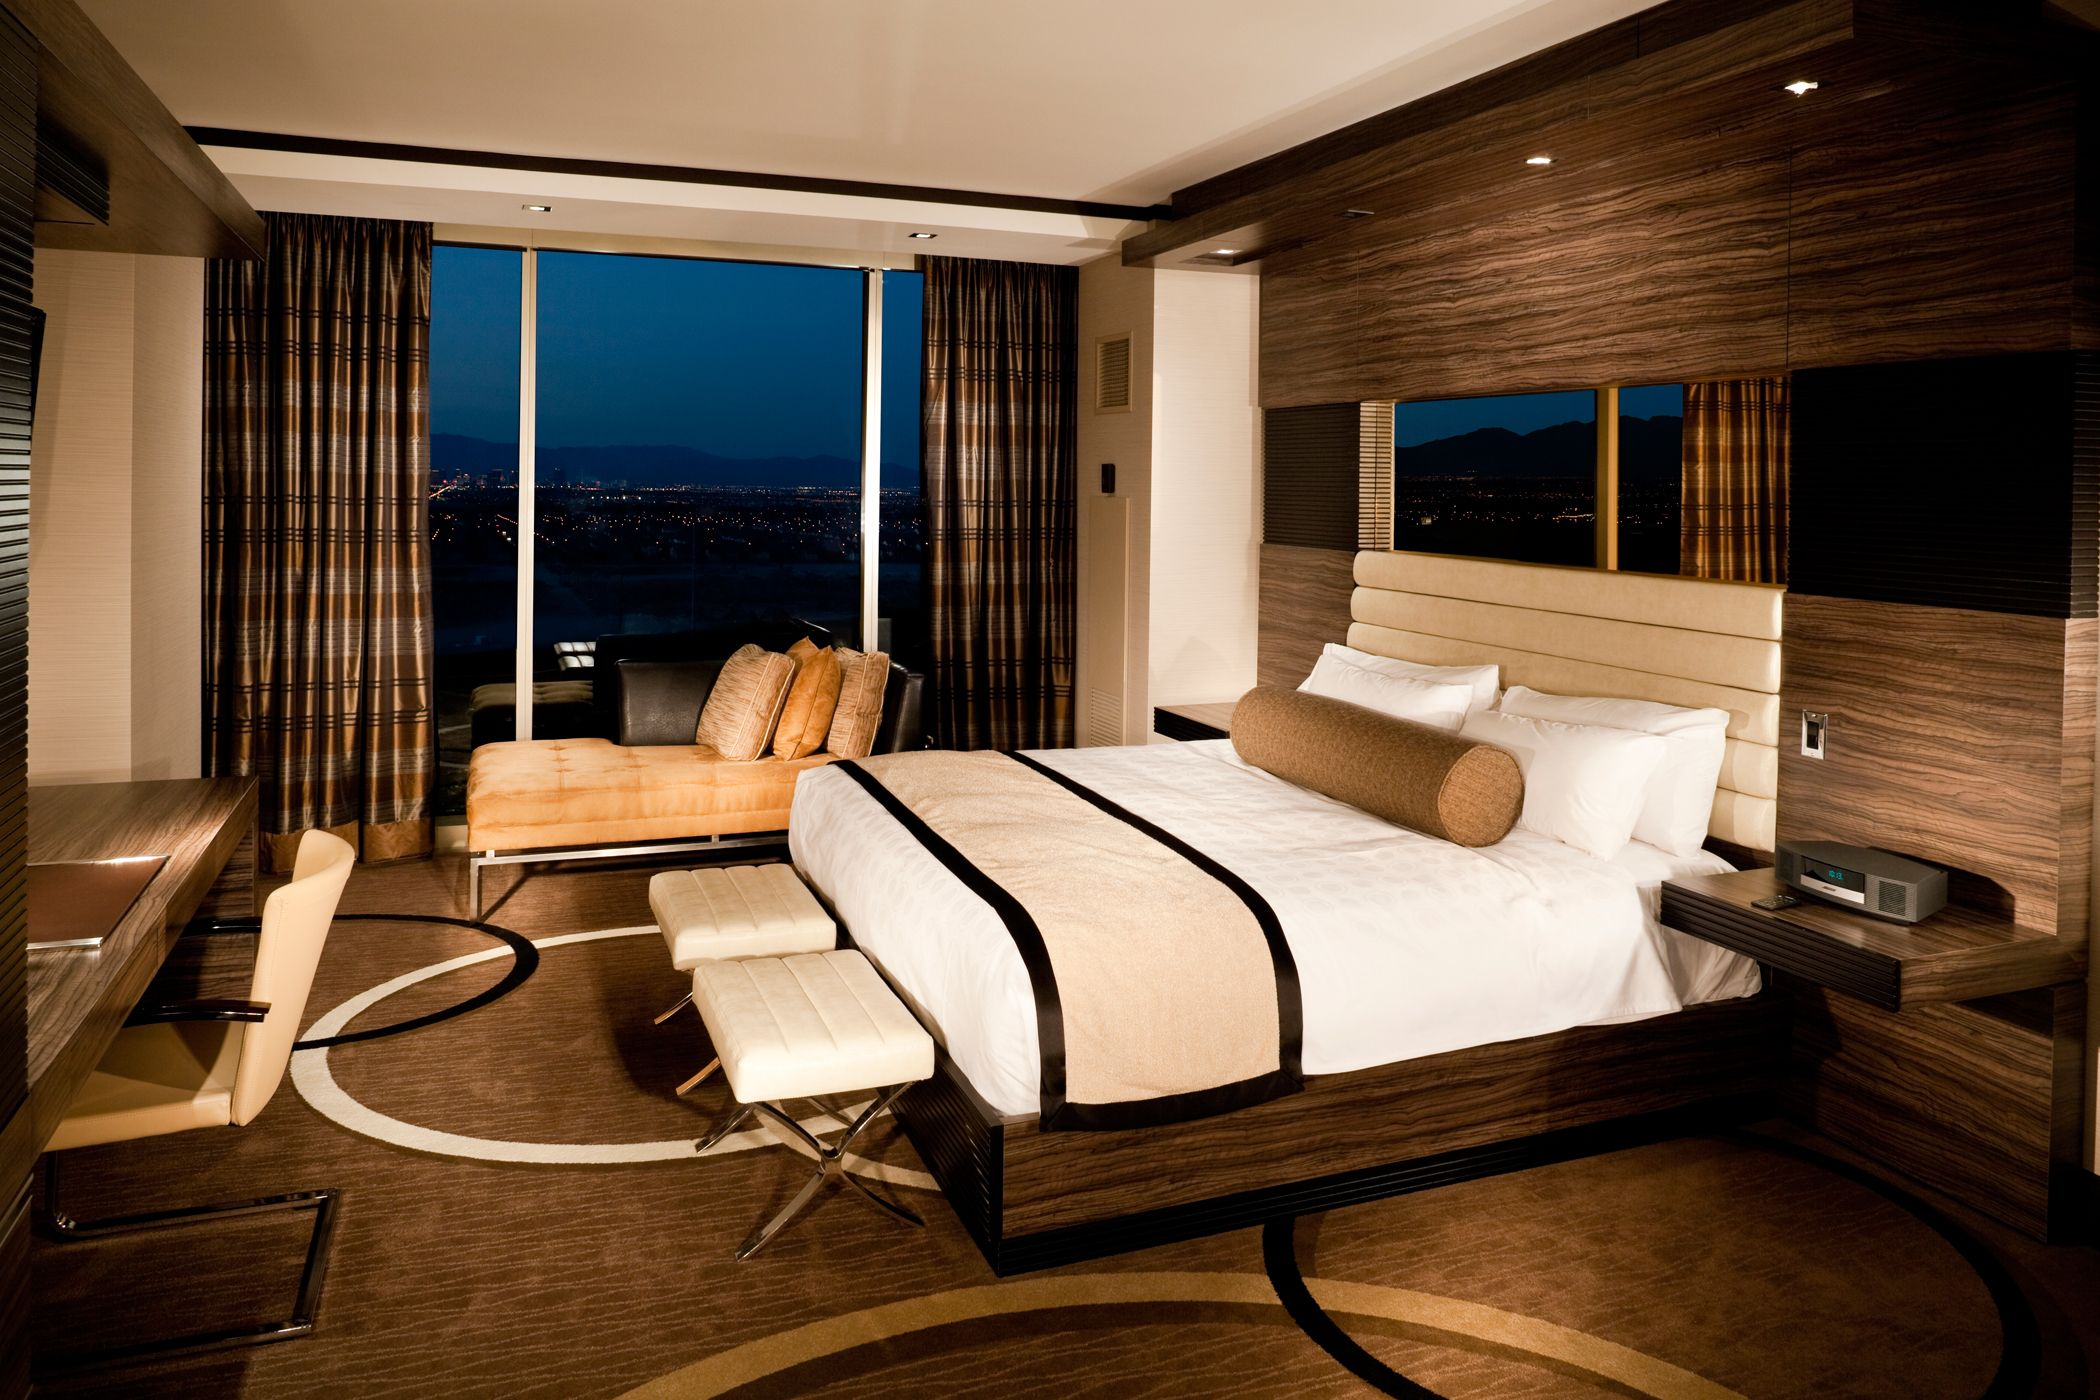 Las Vegas Hotels Suites 2 Bedroom Gorgeous Inspiration Design